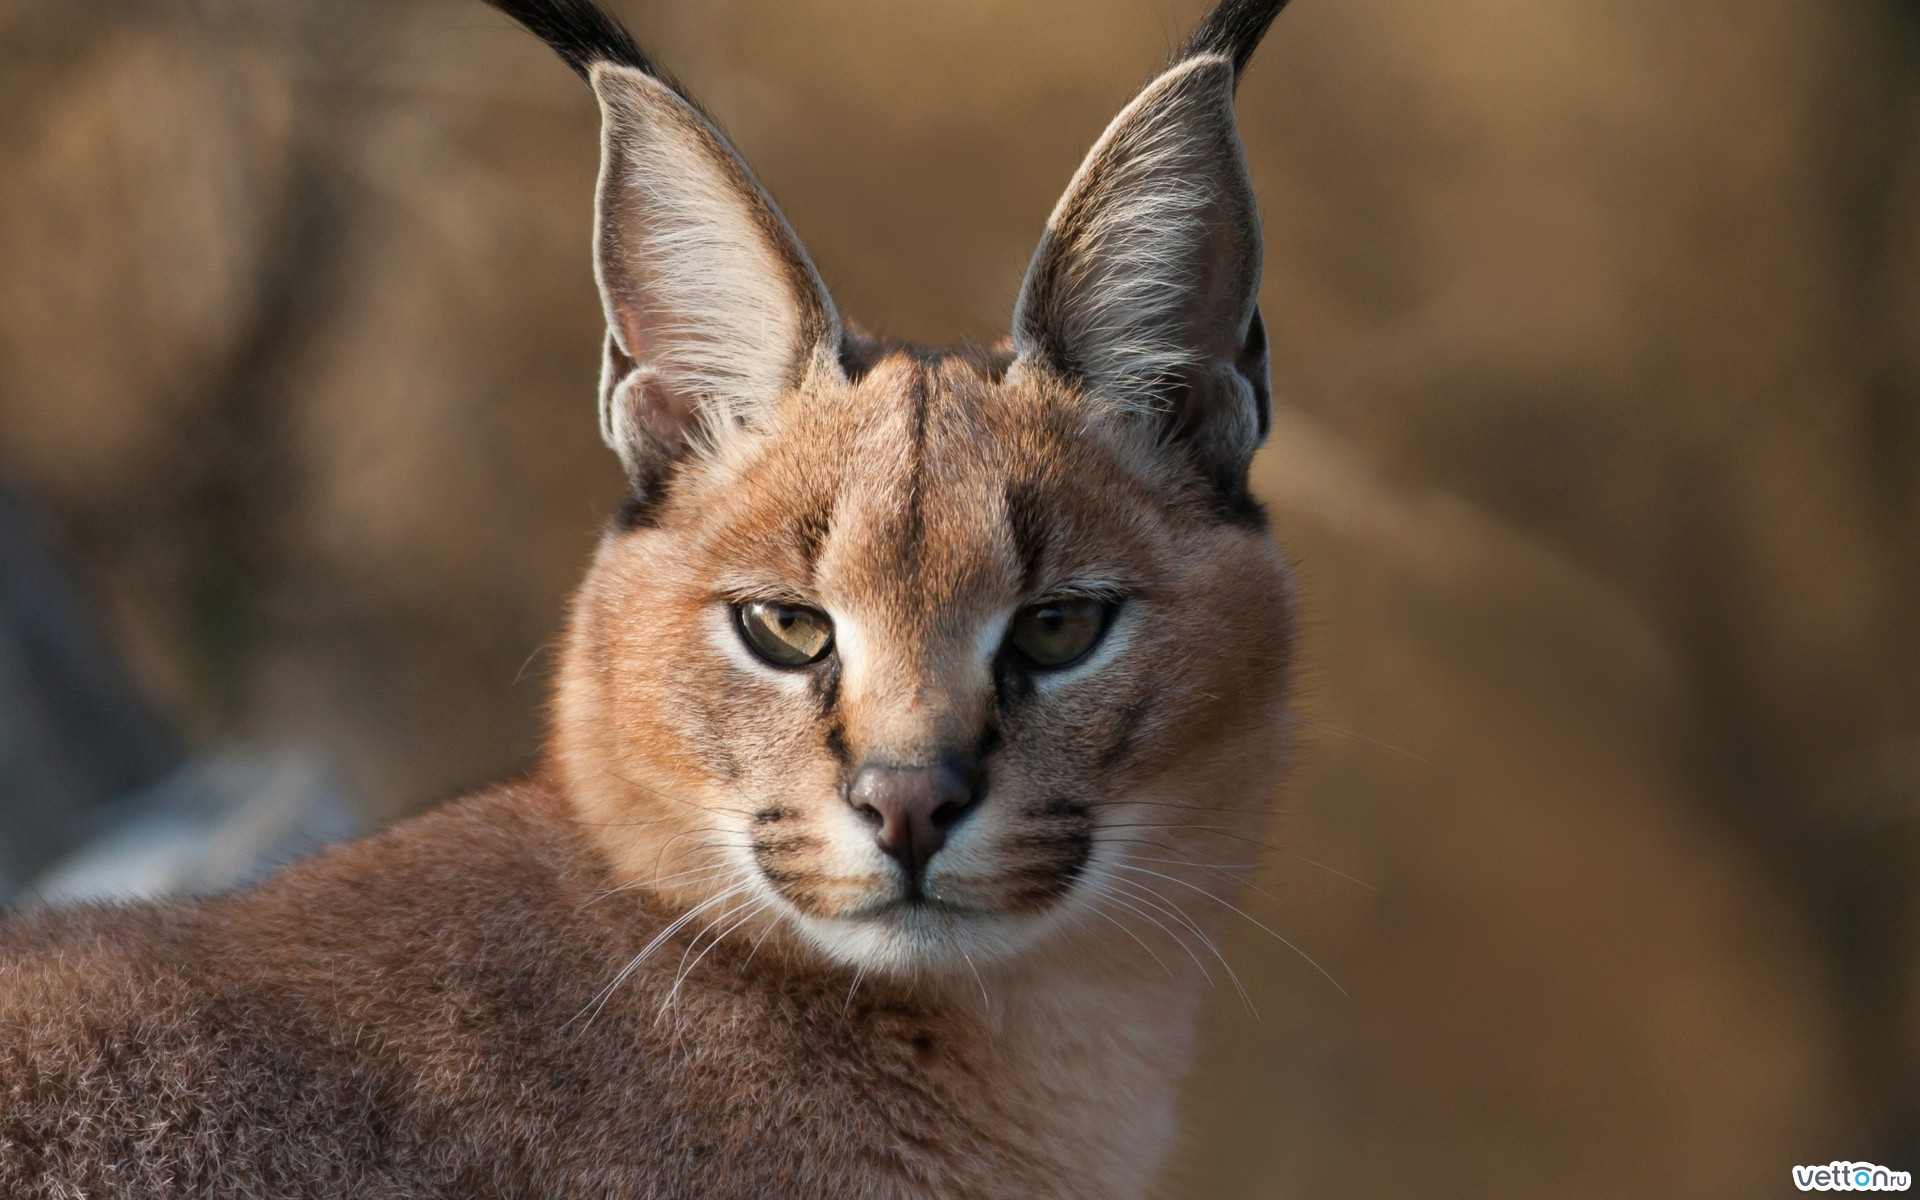 sight, ears, caracal, brushes, soft